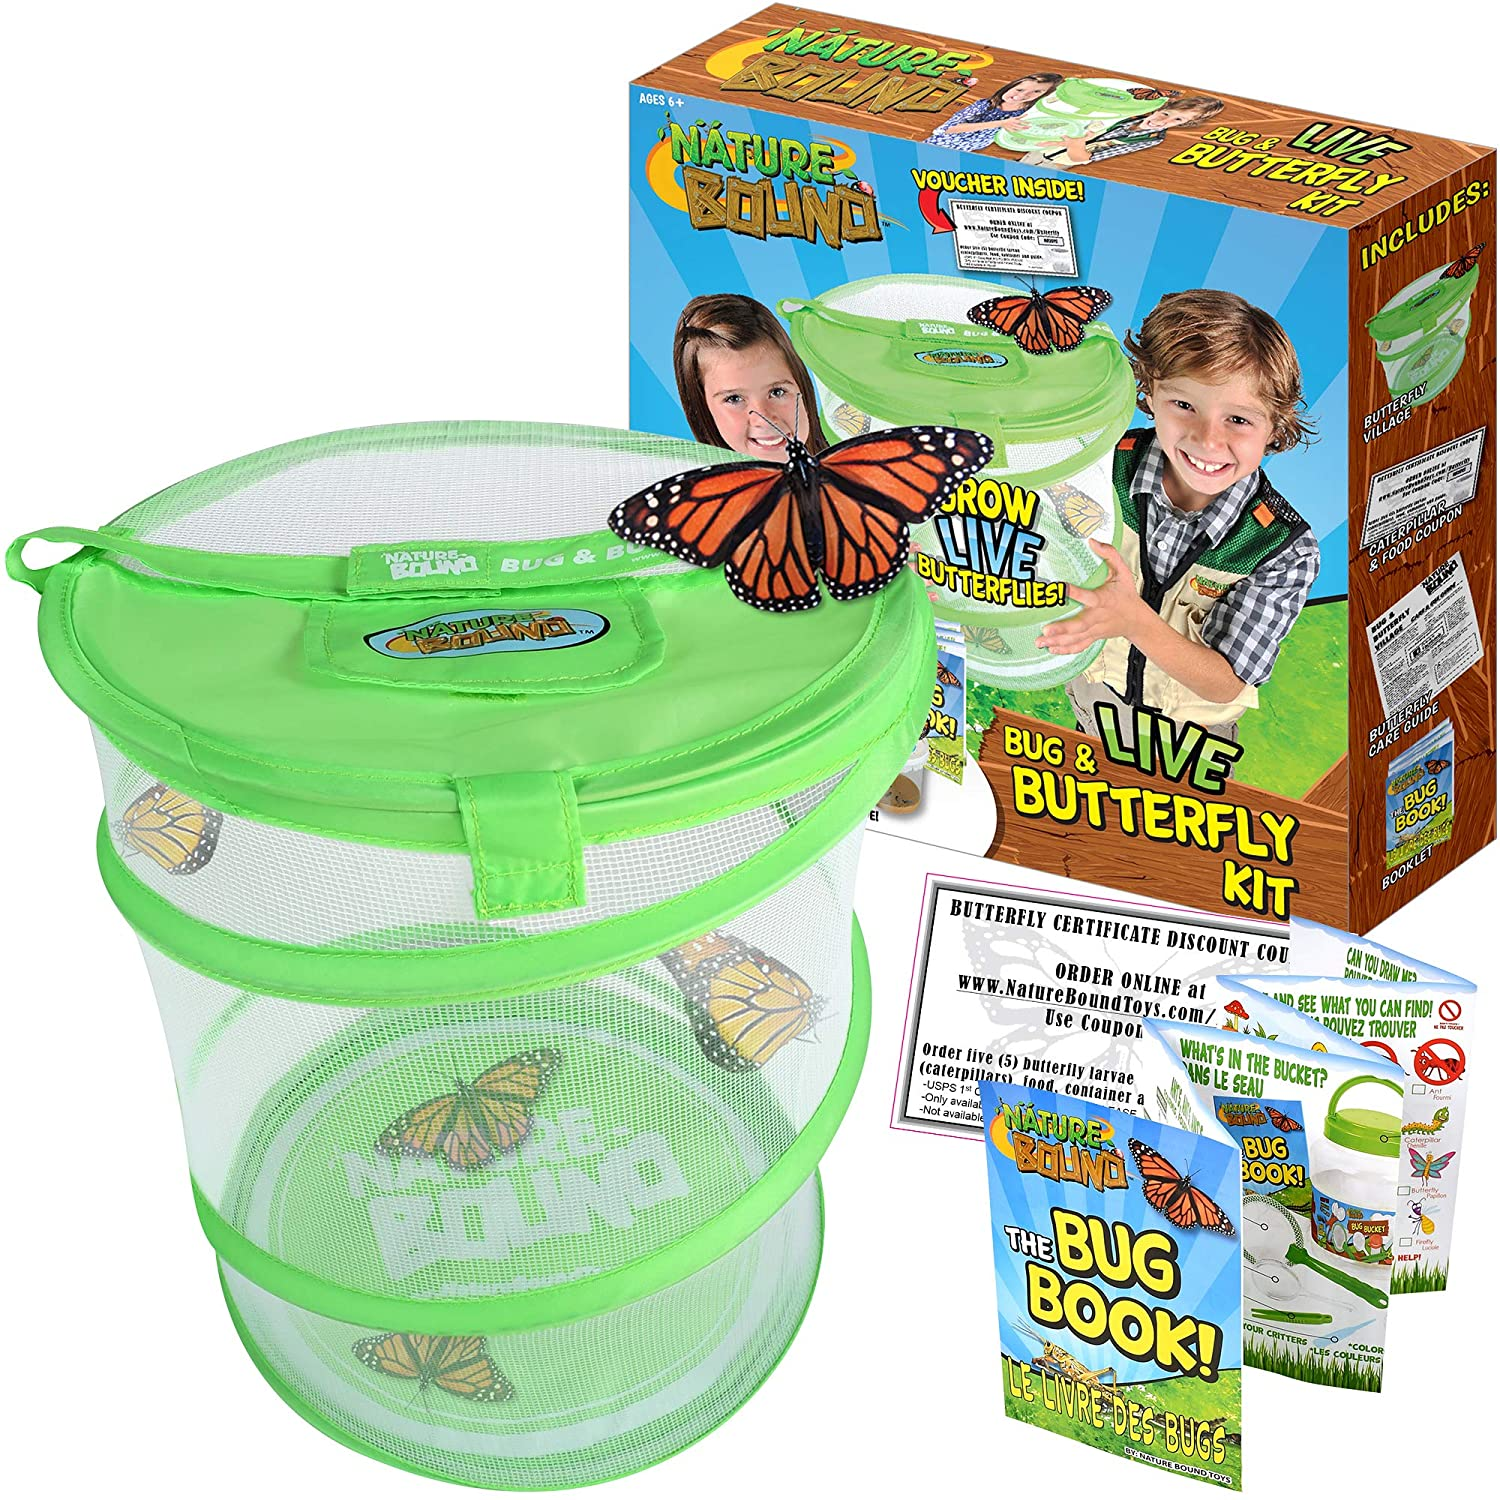 Nature Bound Butterfly Growing Habitat Kit - with Voucher to Redeem Live Caterpillars for Home or School Use - Green Pop-Up Cage 12-Inches Tall